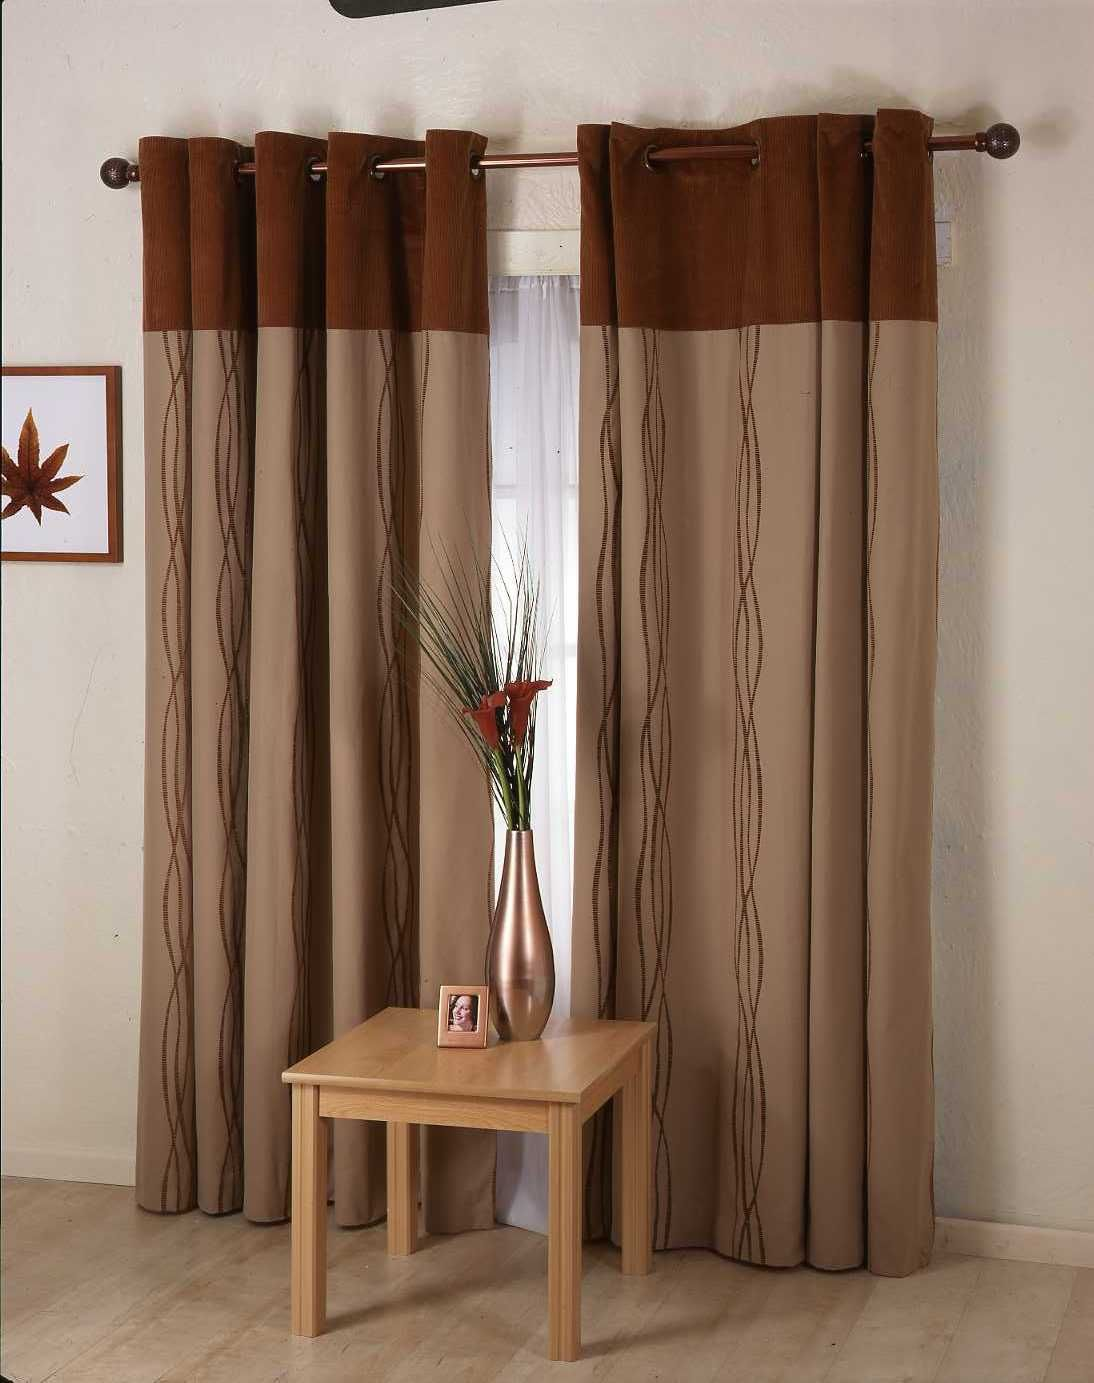 Curtains Design Ideas interior curtains design ideas all about home decor inspiration Images About Curtains On Pinterest Window Curtain Designs Home Curtain Design